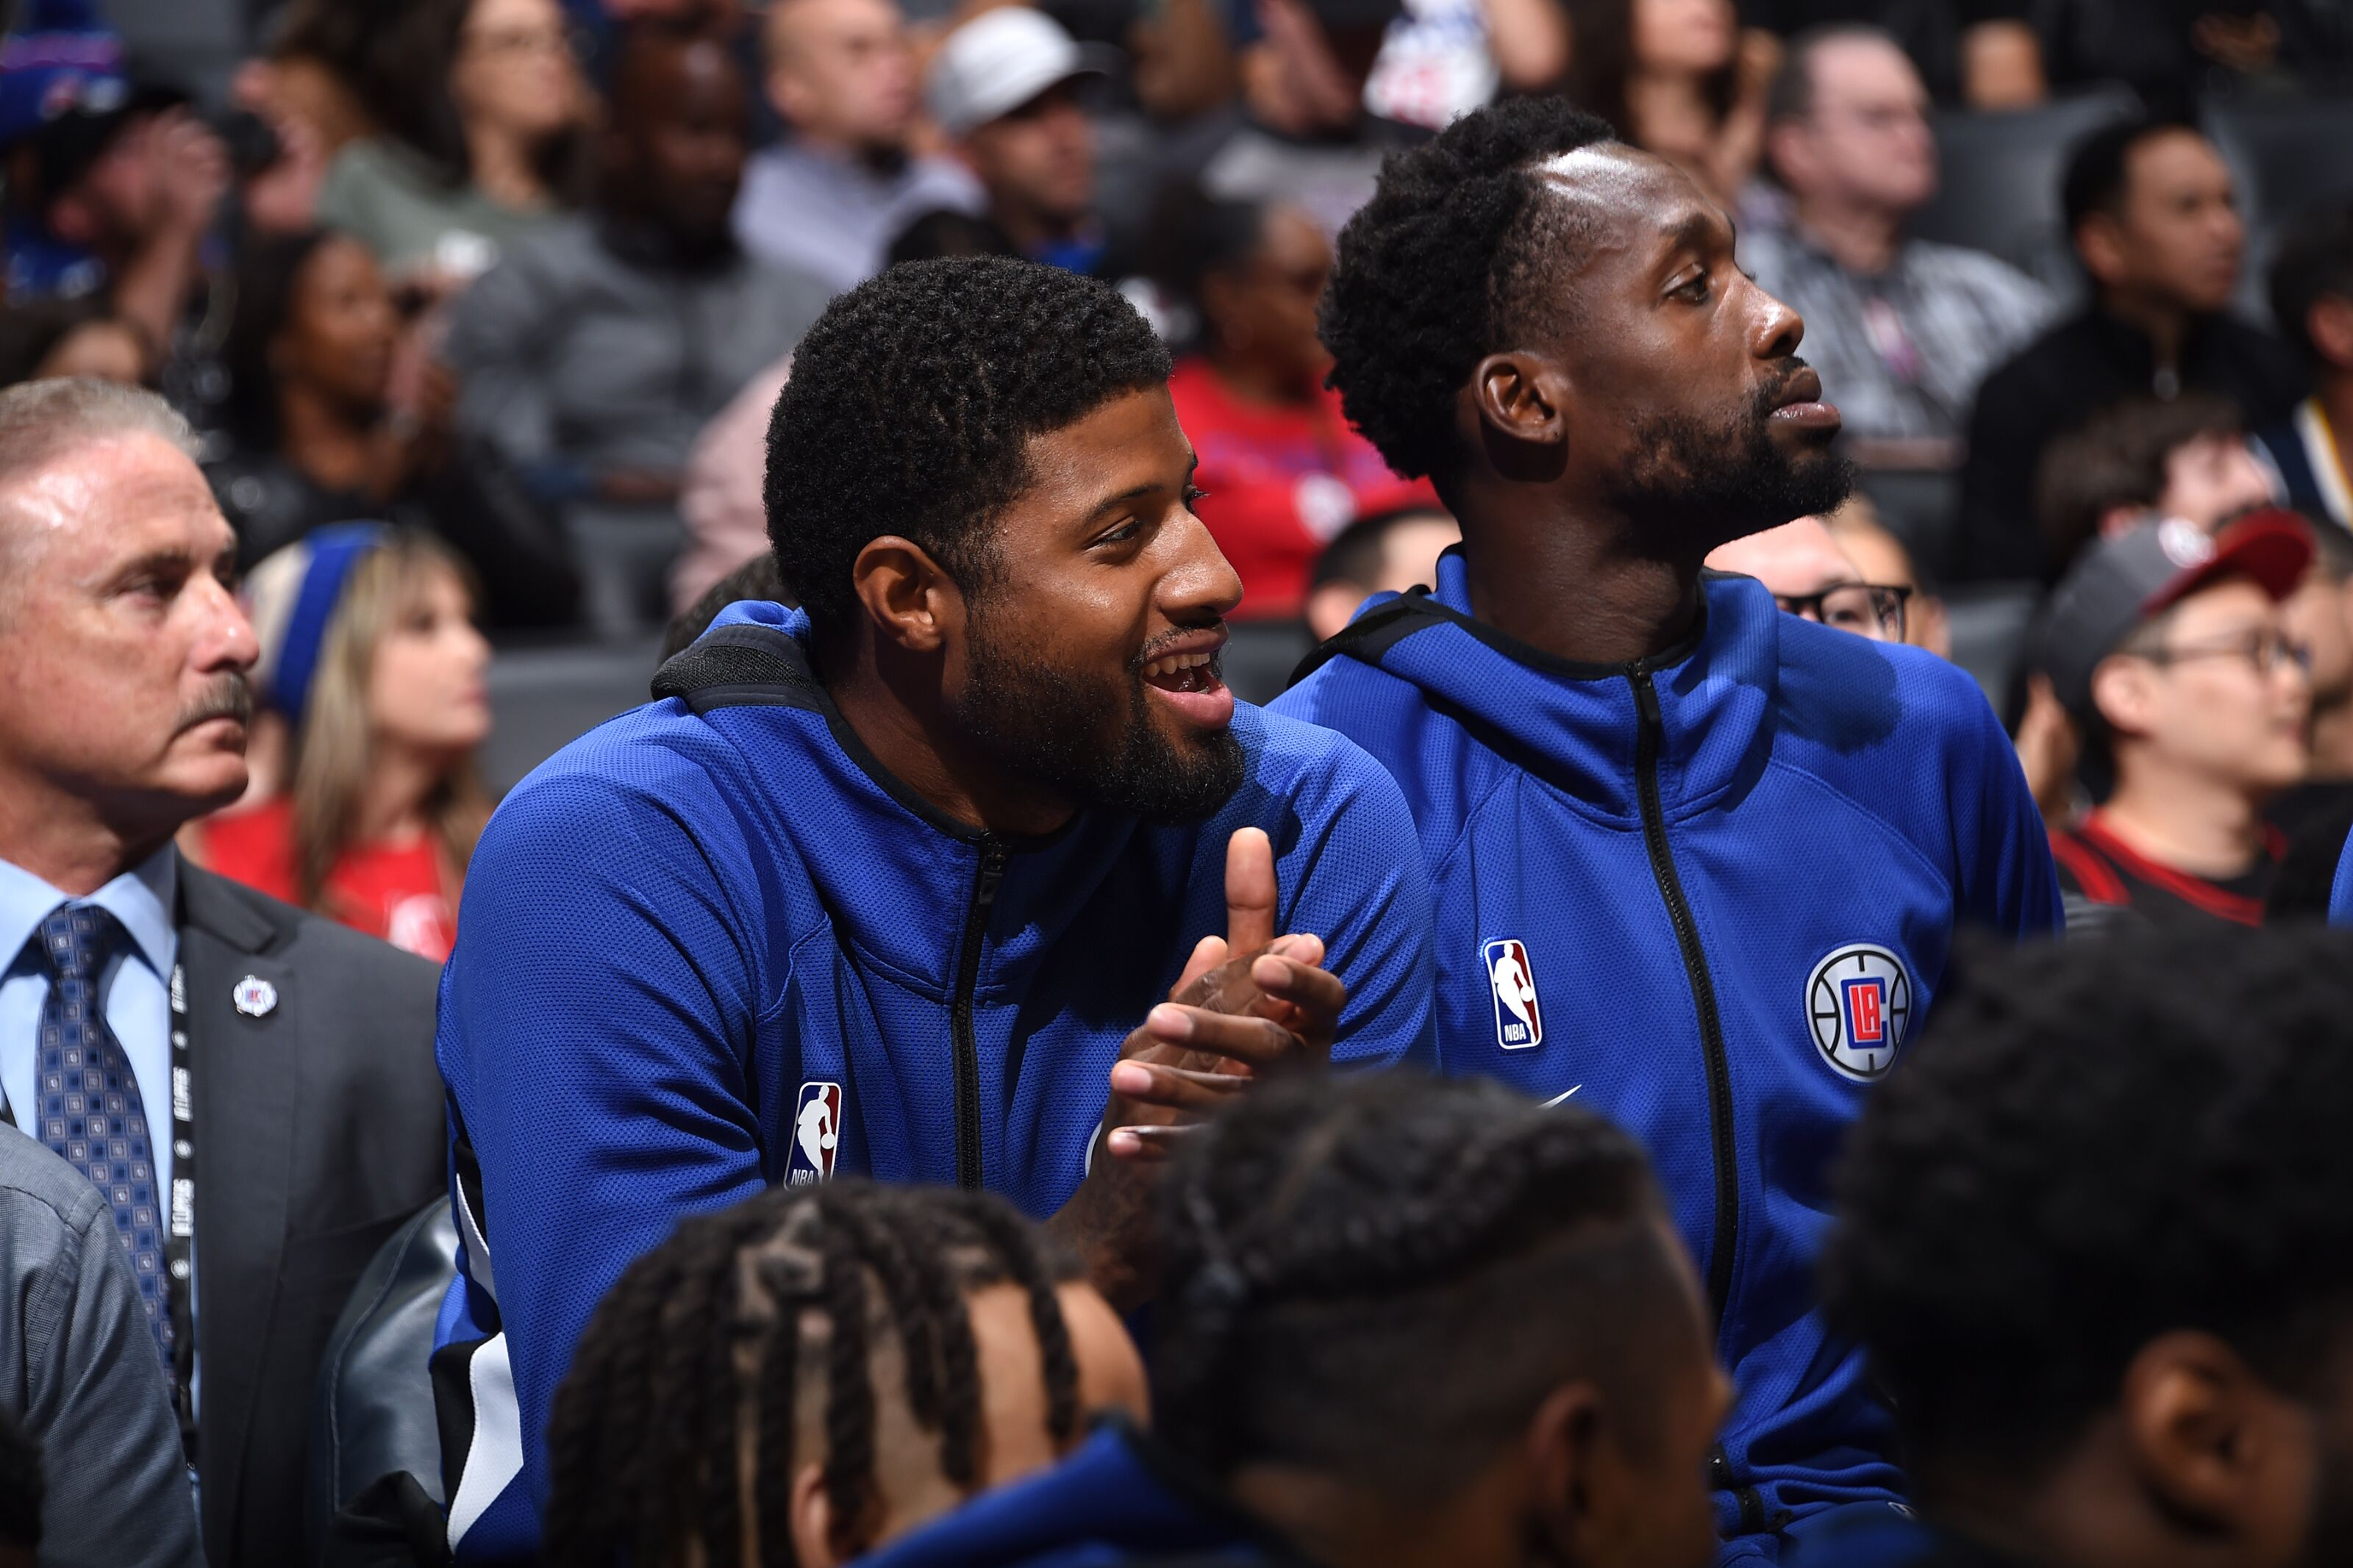 LA Clippers star Paul George's return about ten games away